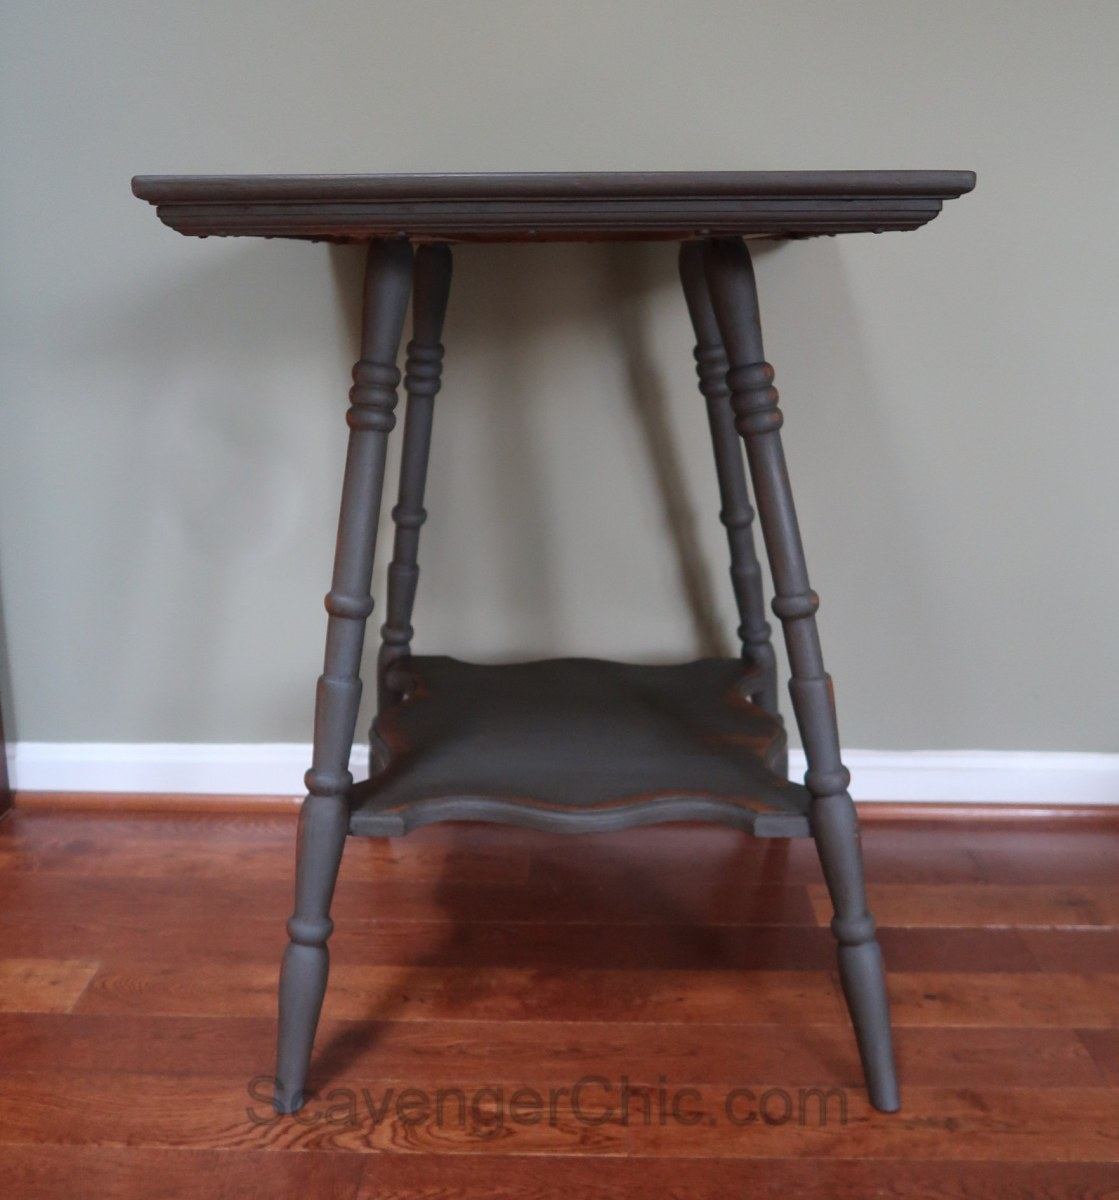 Wobbly Table Fix And Makeover Scavenger Chic